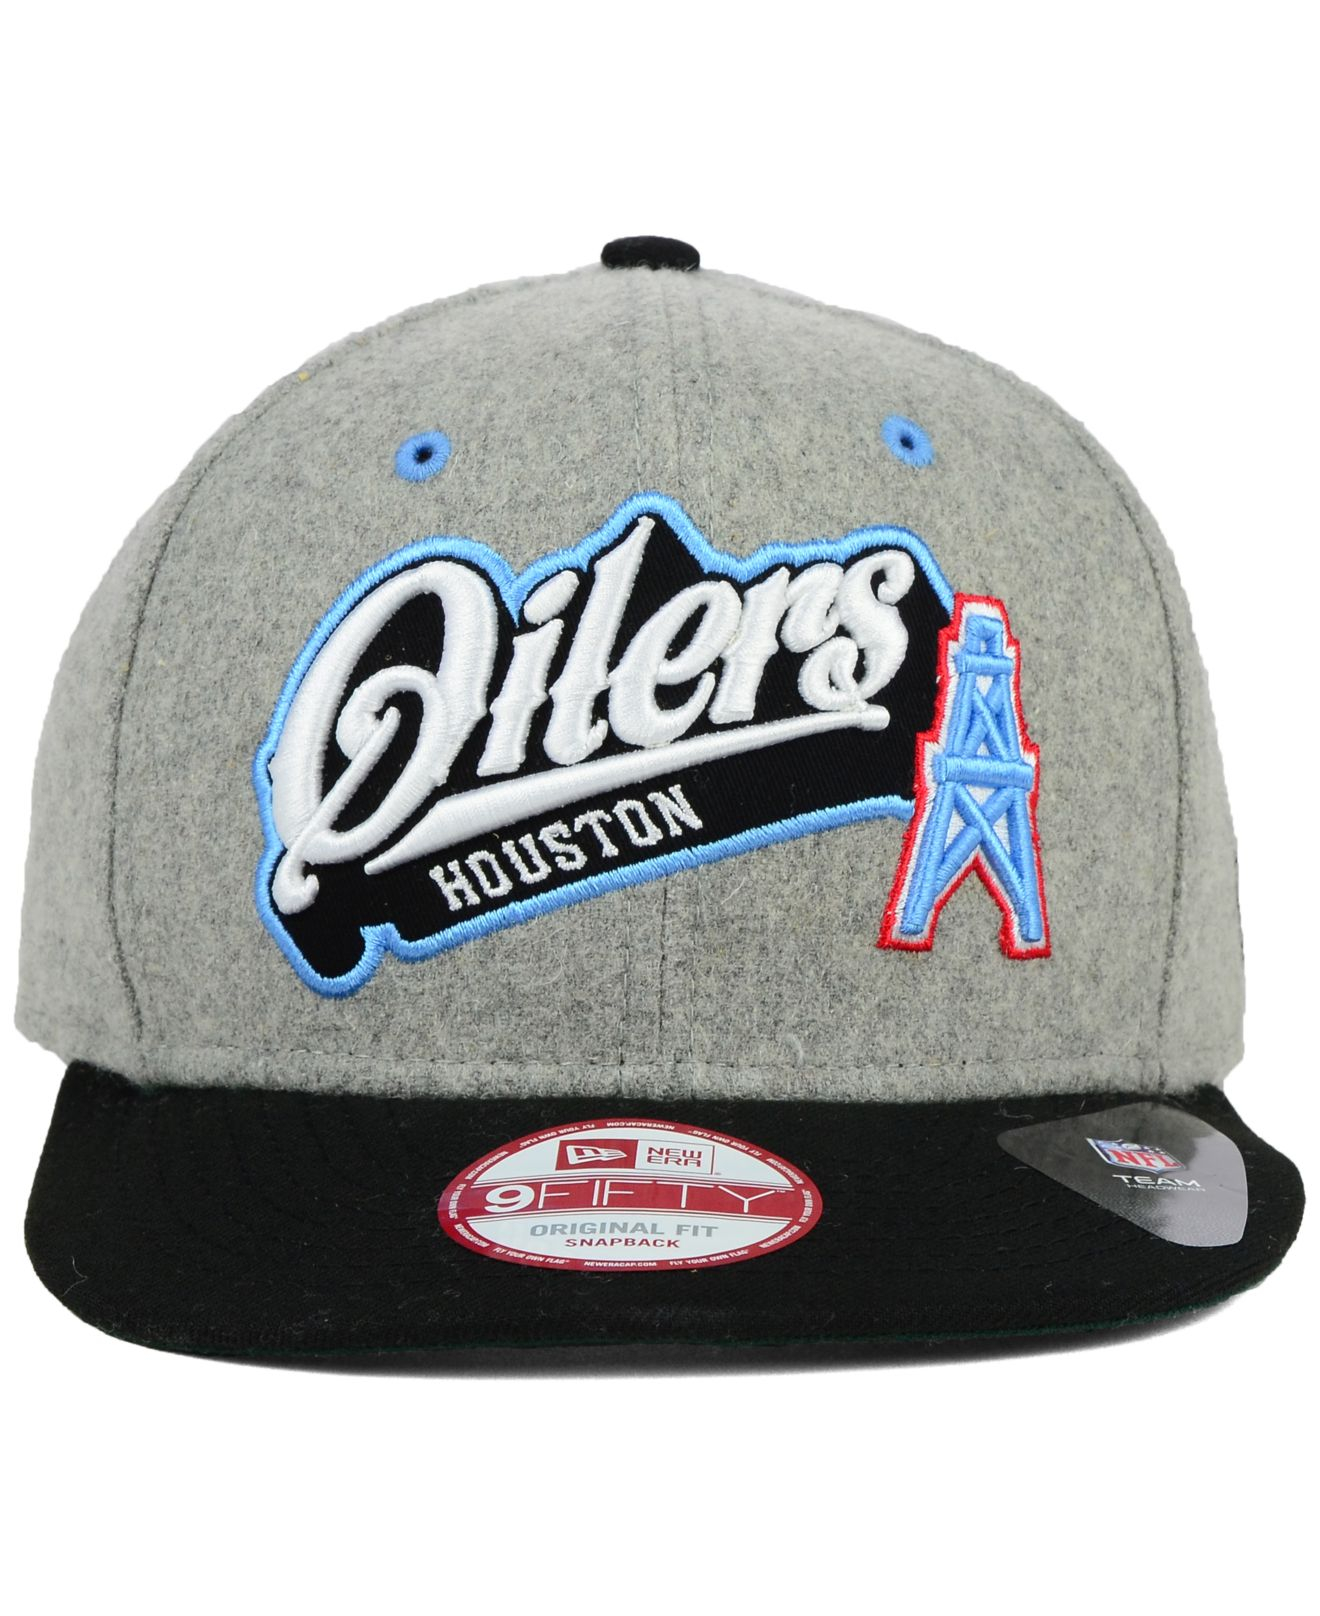 New era gray houston oilers meltone fifty snapback cap product normal jpg  1320x1616 Houston oilers hat 8d4c3b819